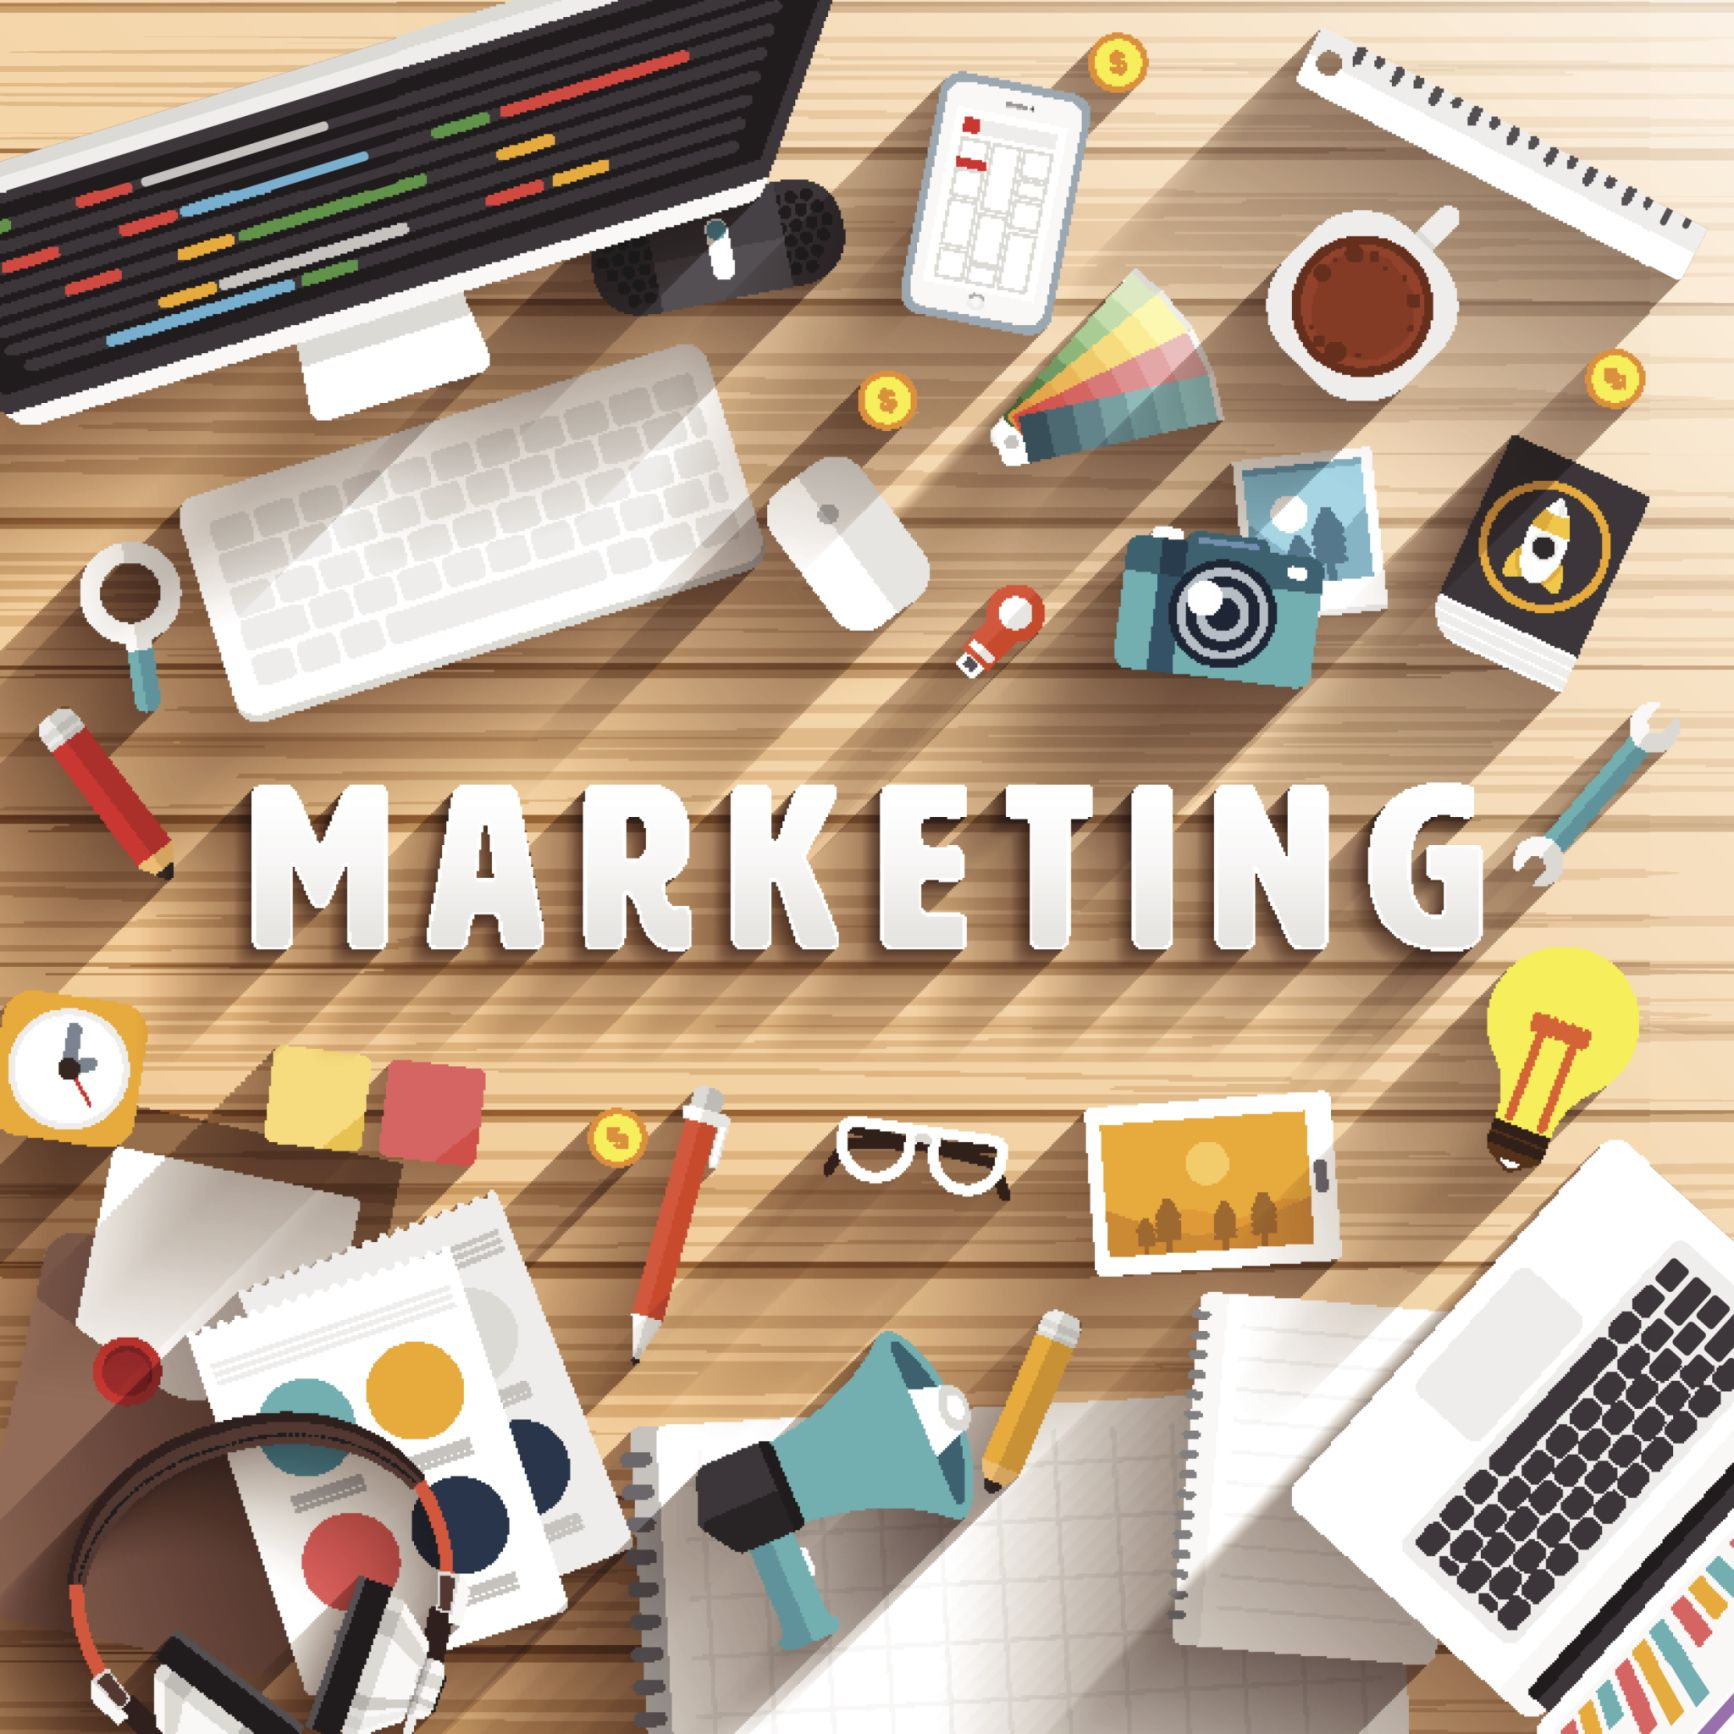 What Are the Best Courses for Marketing?